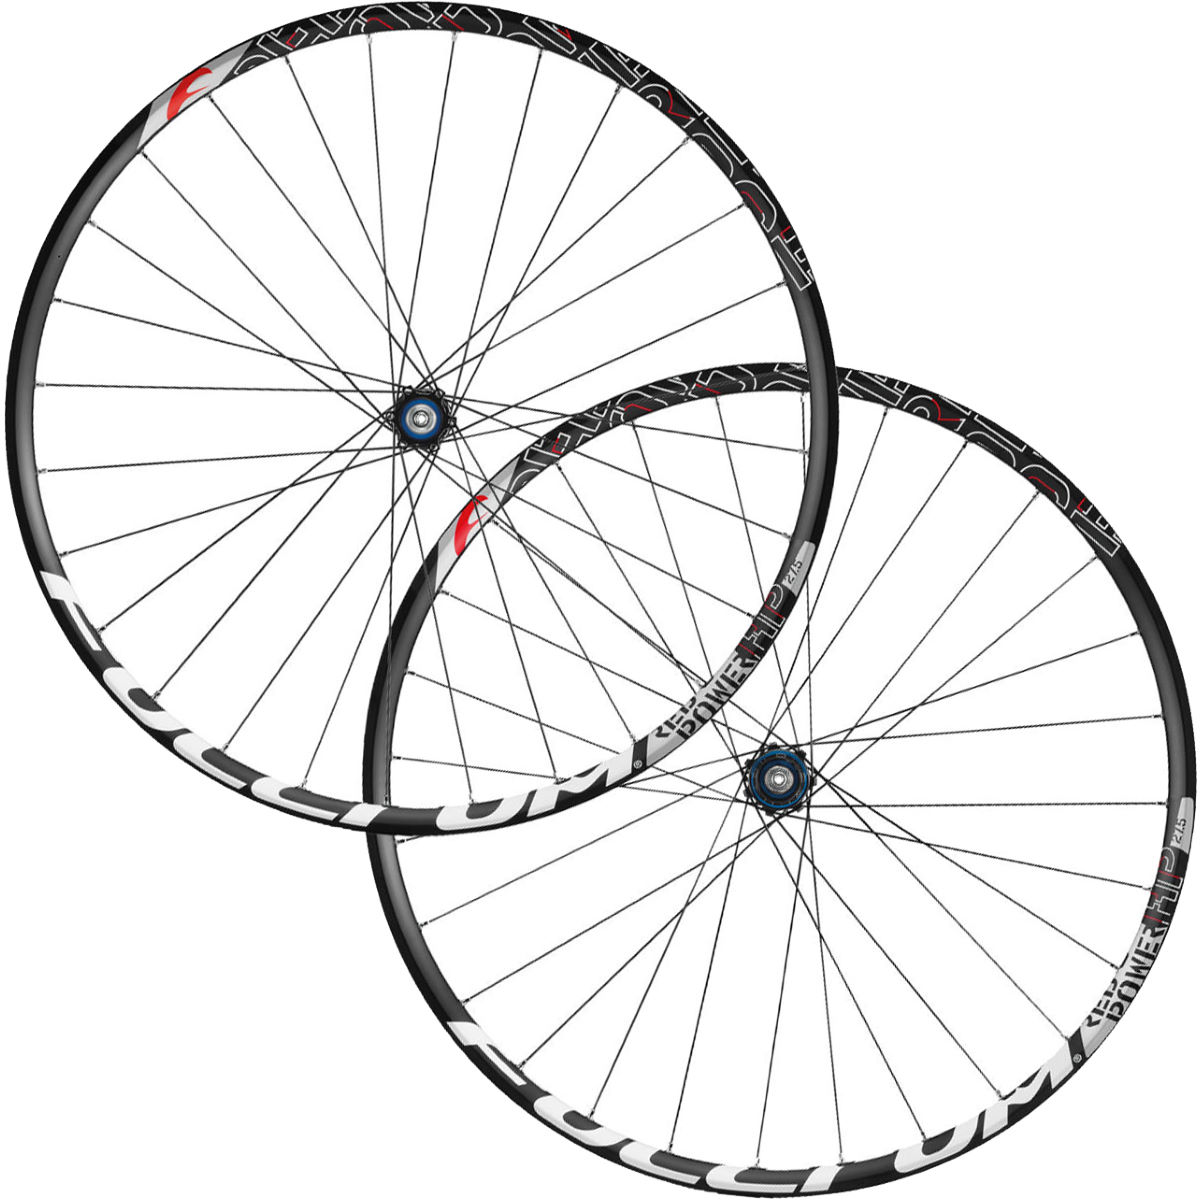 Fulcrum Red Power HP 27.5'' Disc Brake MTB Wheelset - 6 Bolt QR Black / Red Roues performance